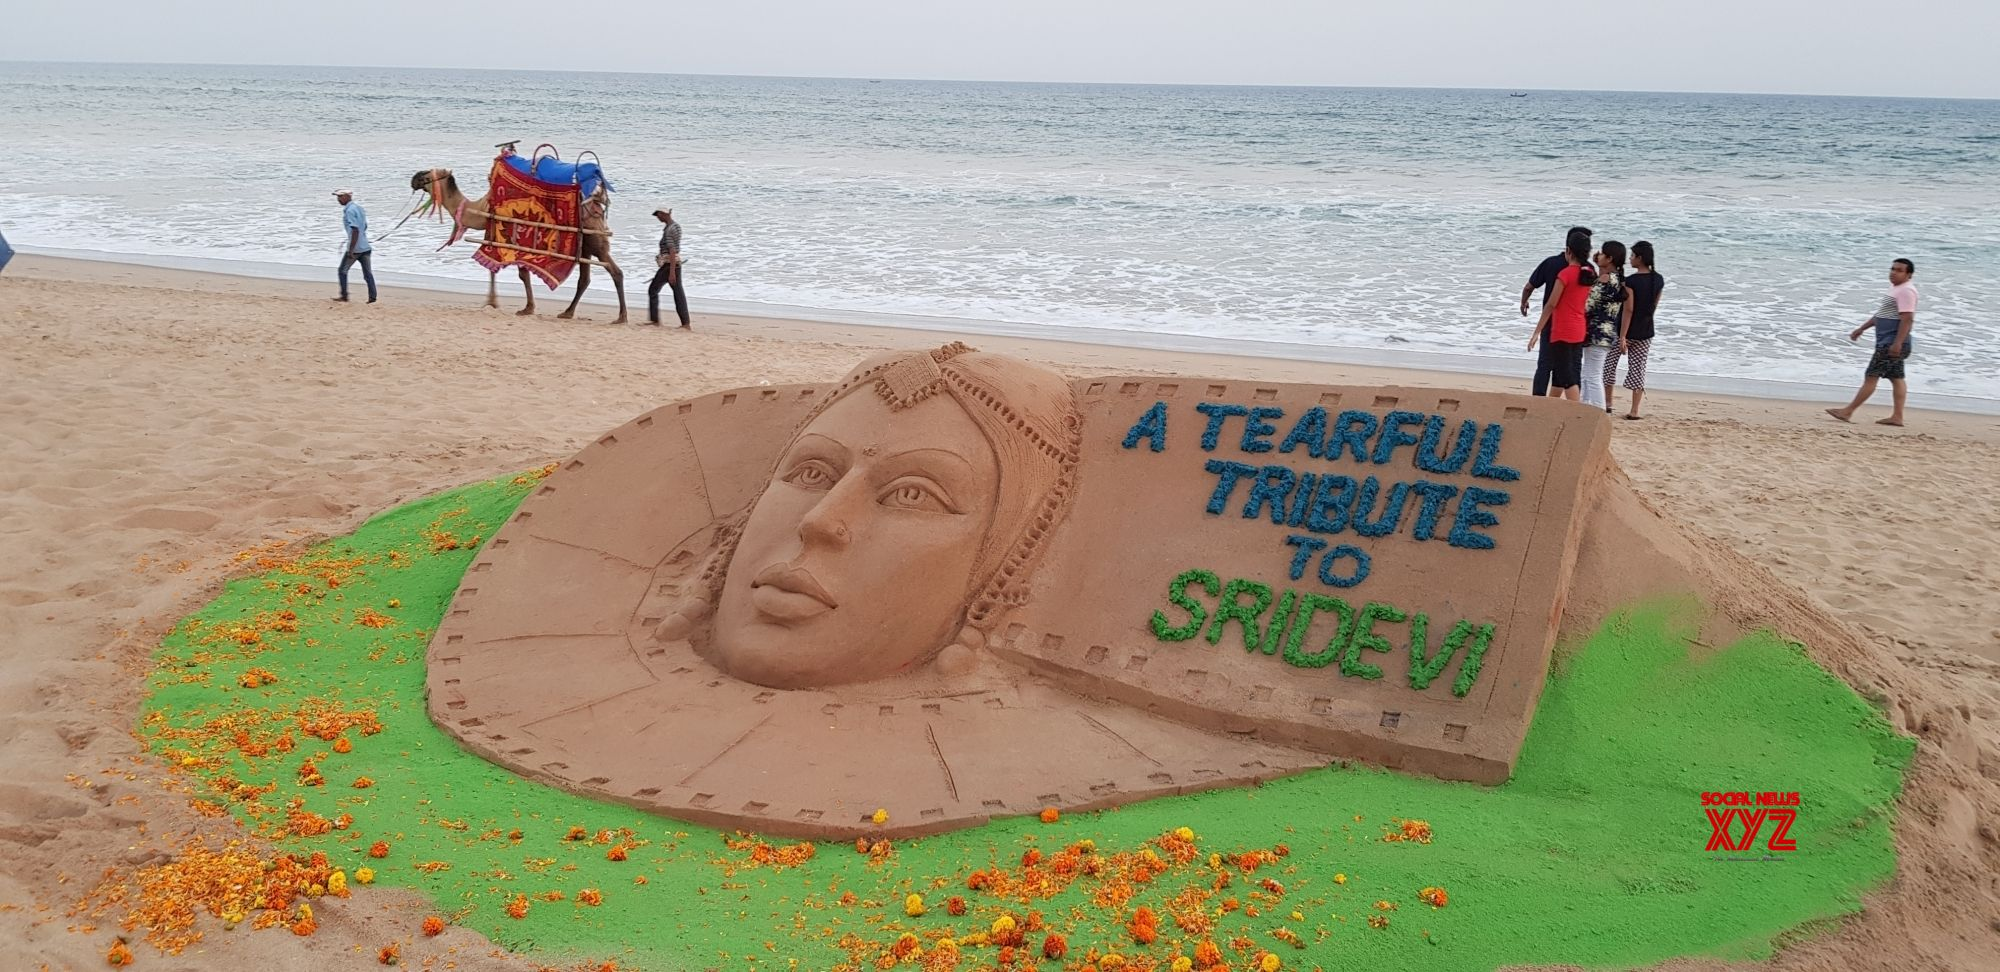 Puri: Sand artist Manas Sahoo's creation to pay tribute to late actress Sridevi at Puri beach, Odisha on Feb 25, 2018. (Photo: IANS)